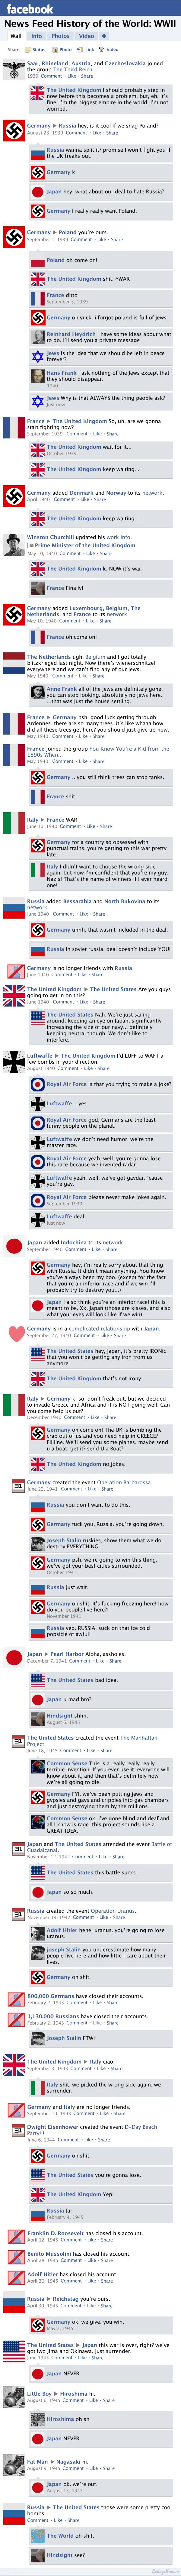 News Feed History of the World War 2 !! Genius Way to present !